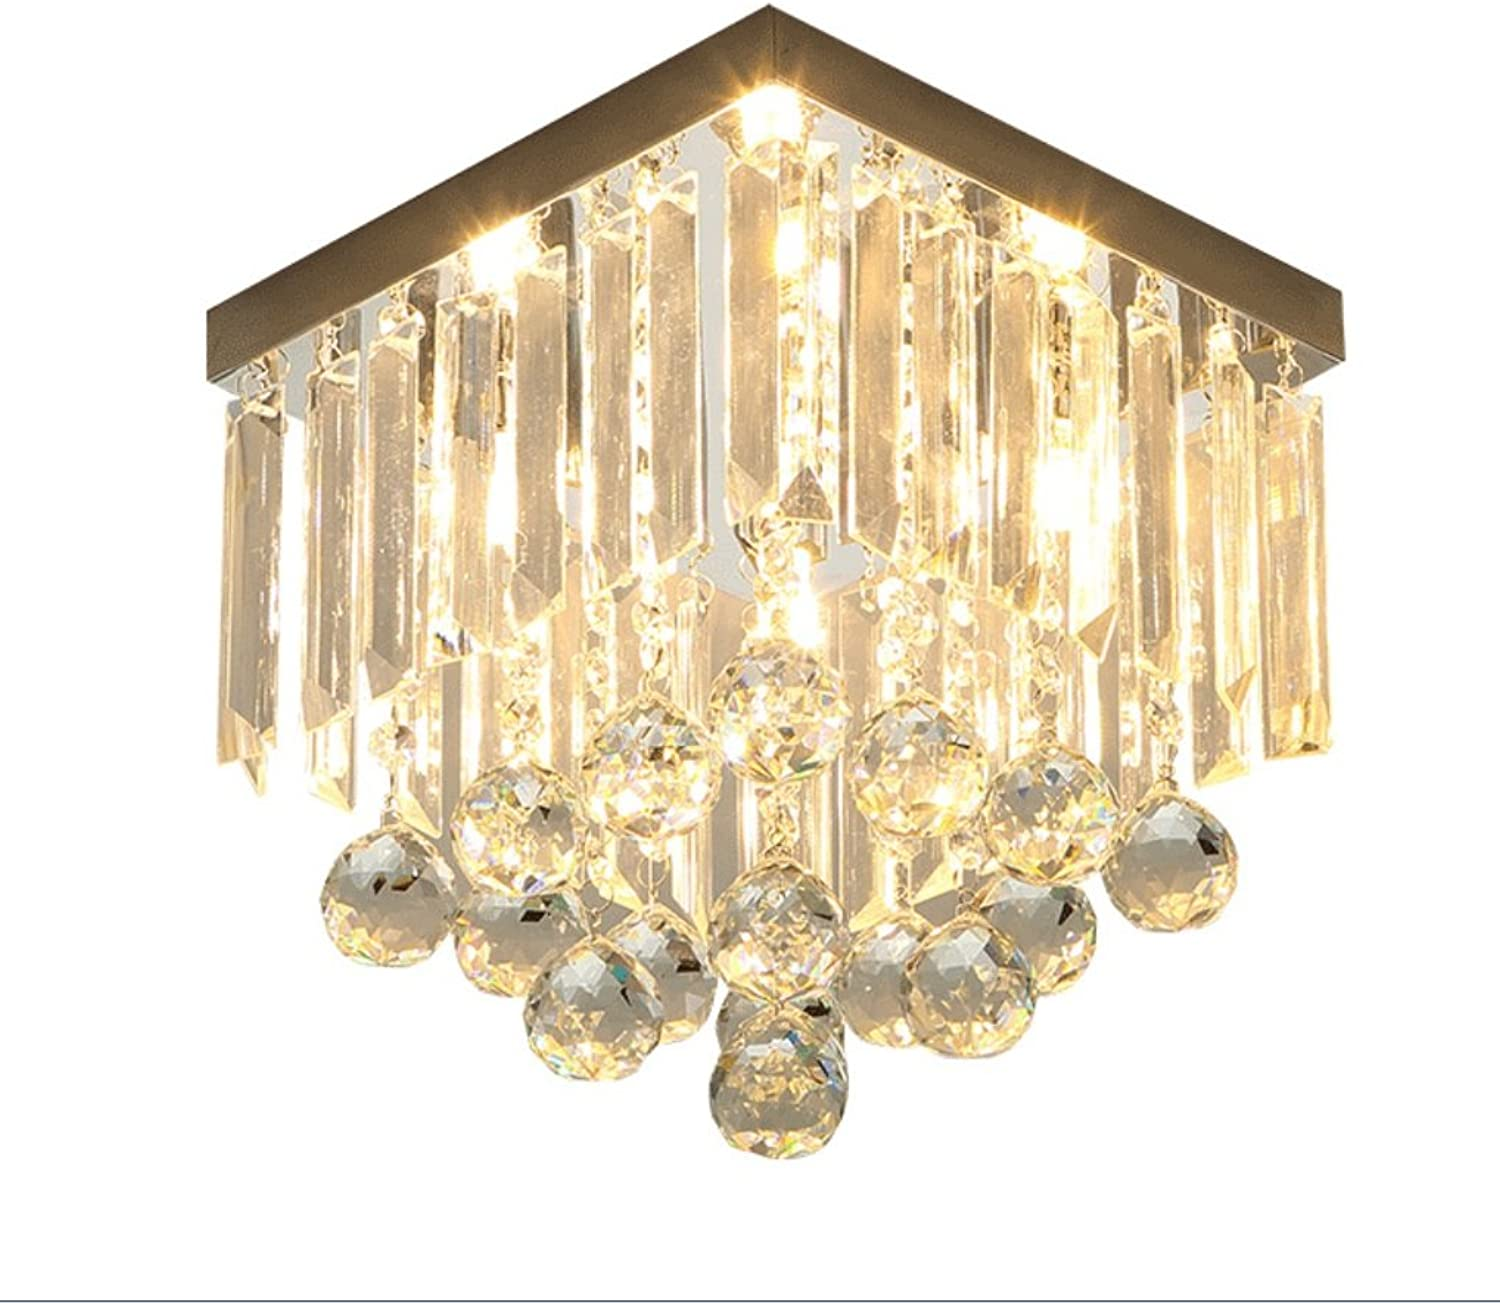 Simple Modern LED Crystal Lights Aisle Lights Square Entrance Hallway Balcony Lights Simple European Lamp Creative Ceiling Lamp